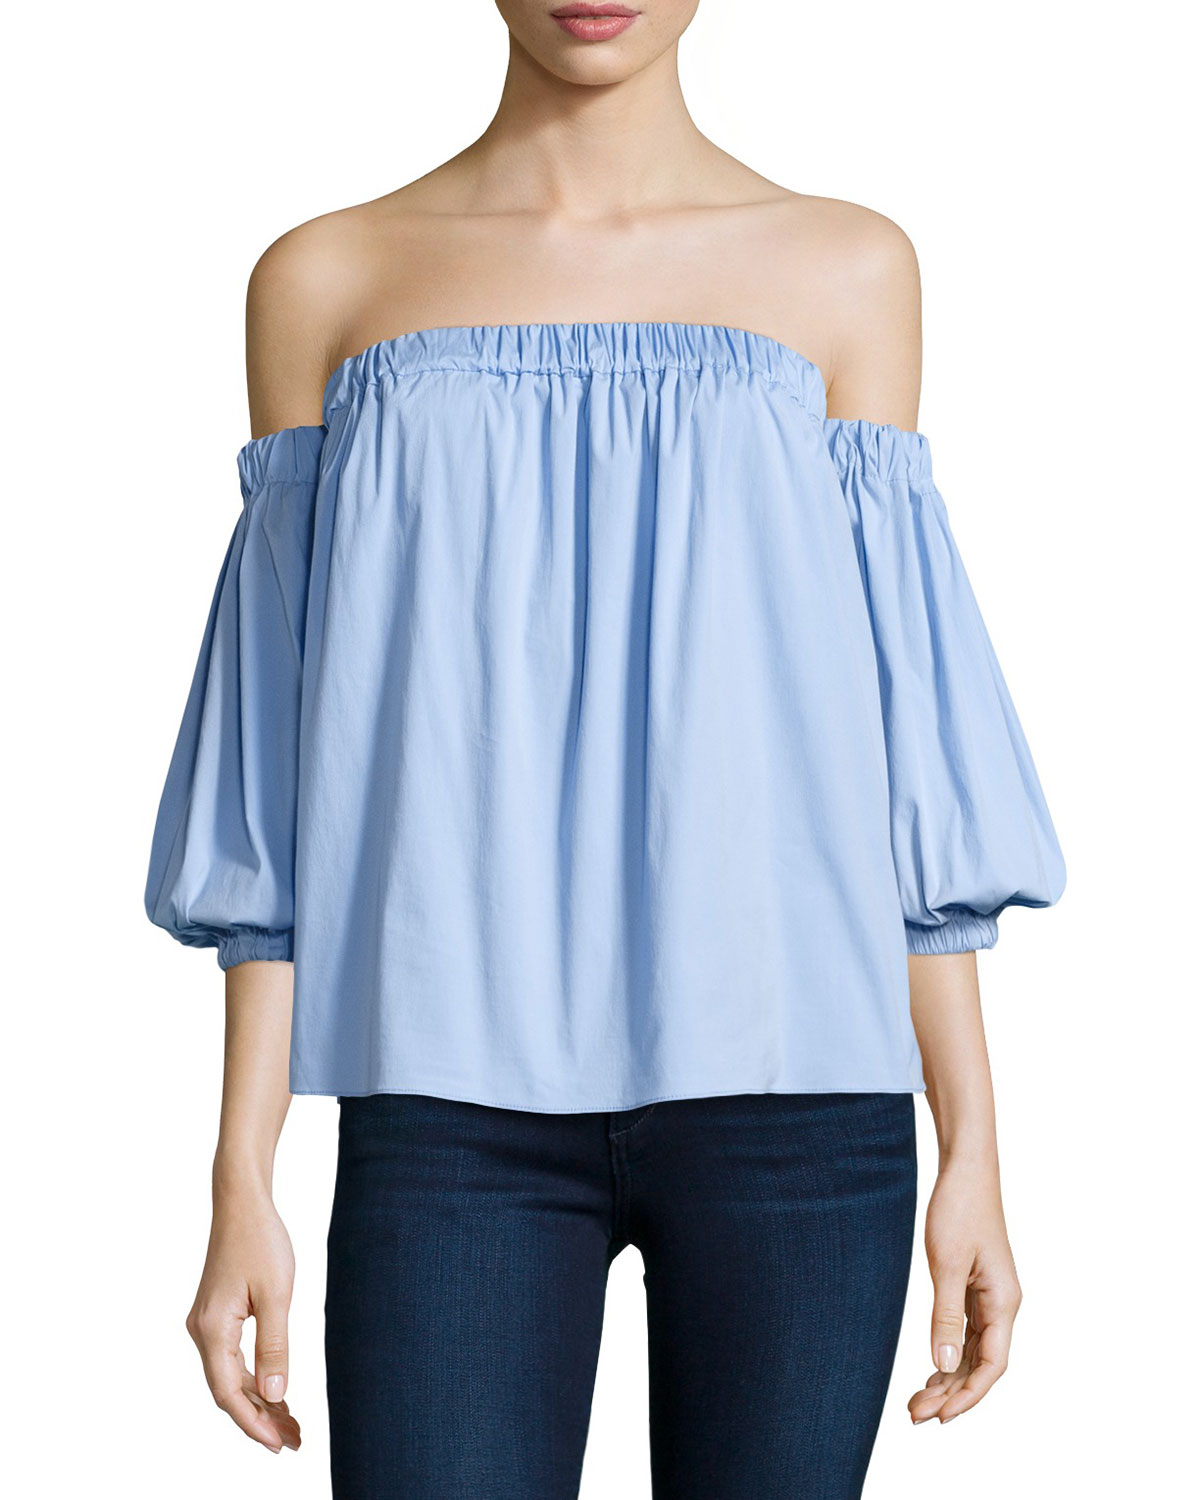 Off-the-Shoulder Stretch-Cotton Blouse, Sky (Blue), Size: L - Milly